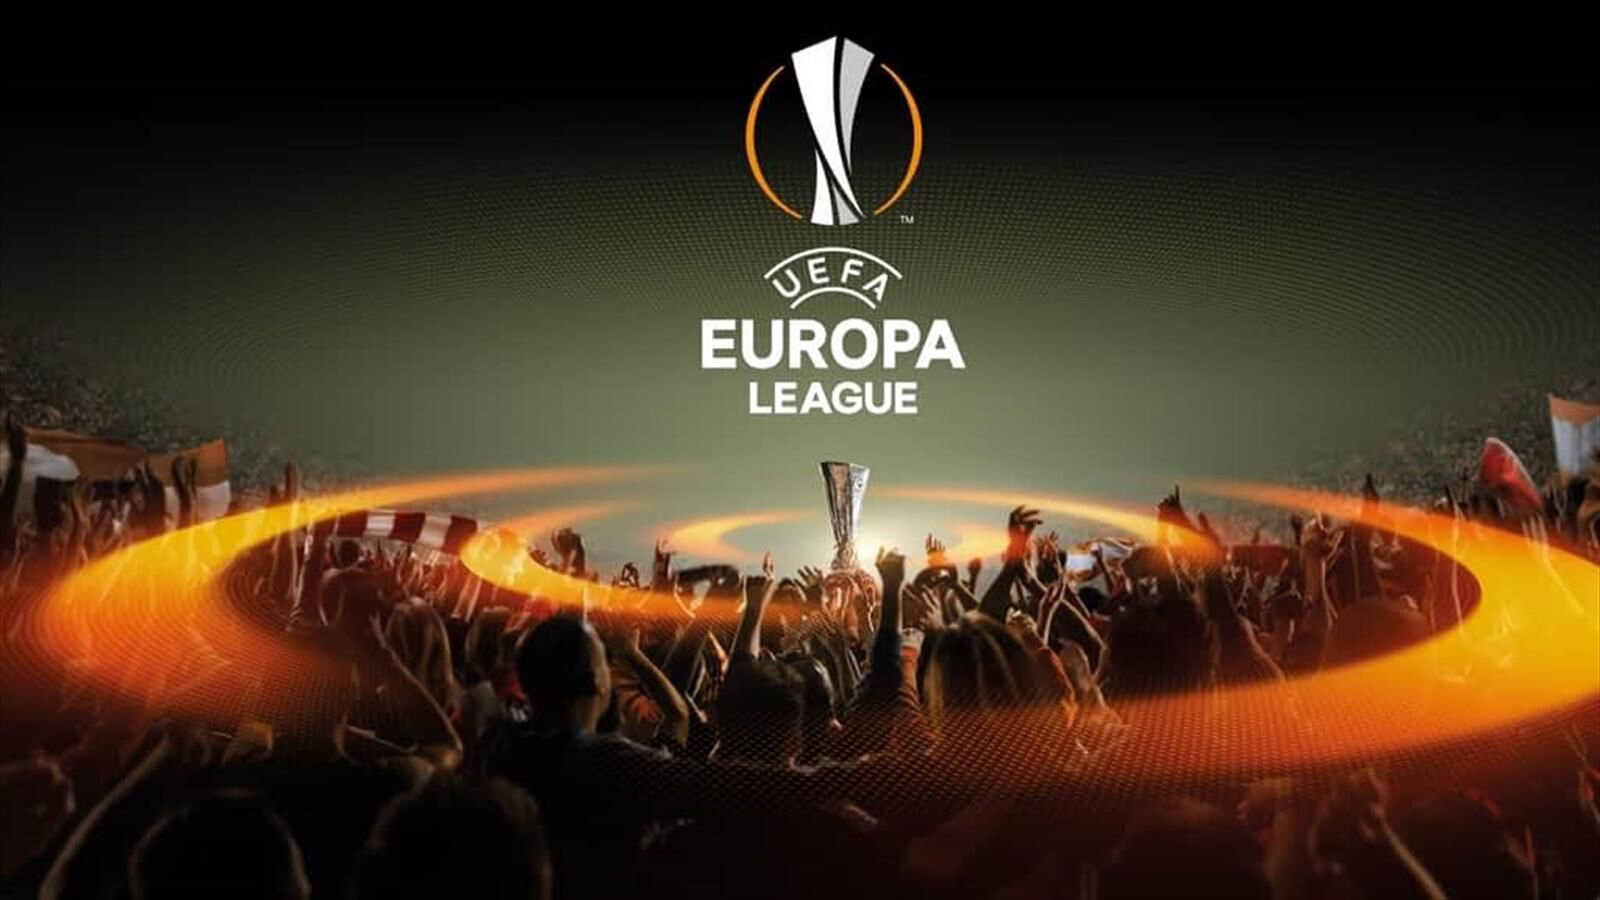 Europa League le programme de la 1er Journée !